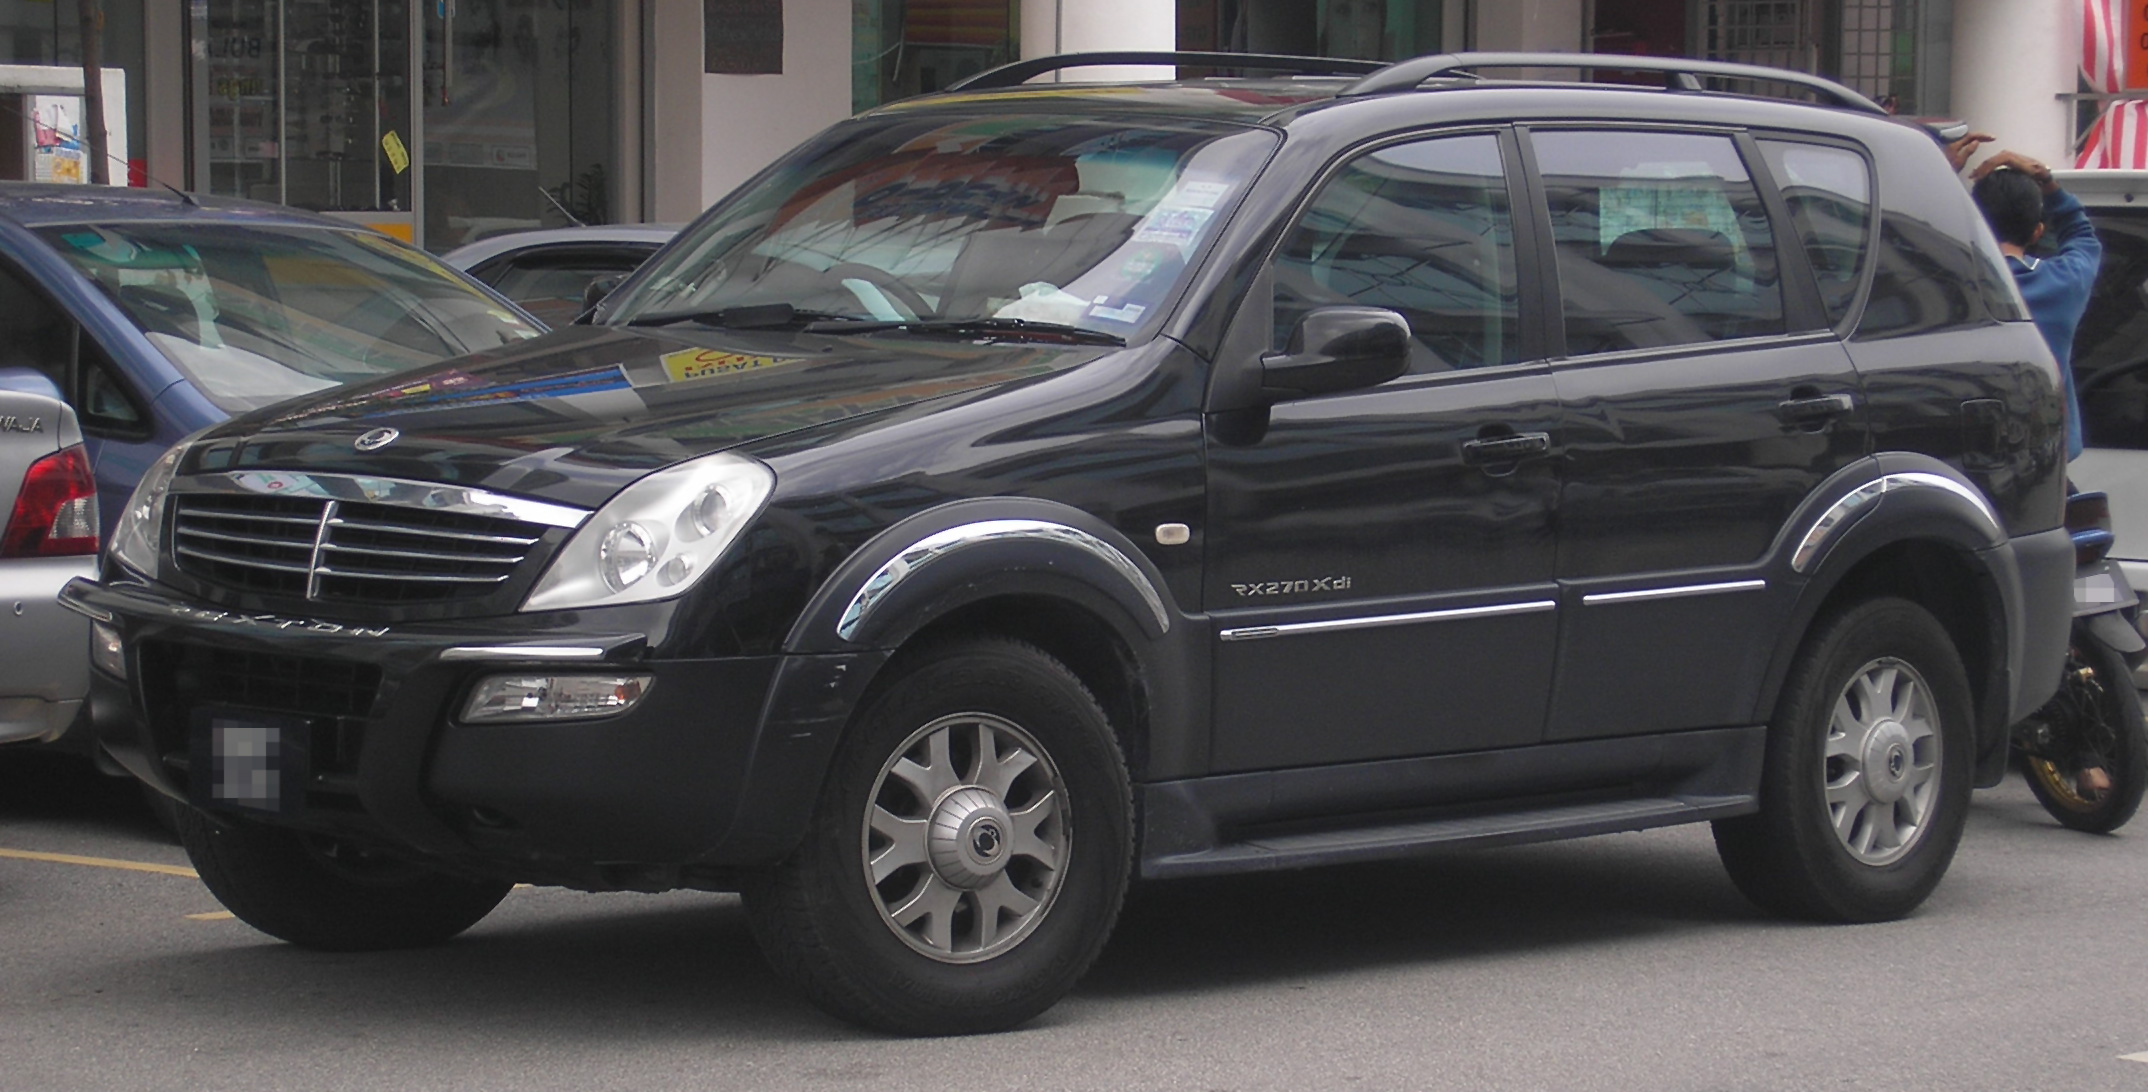 file ssangyong rexton first generation front wikimedia commons. Black Bedroom Furniture Sets. Home Design Ideas